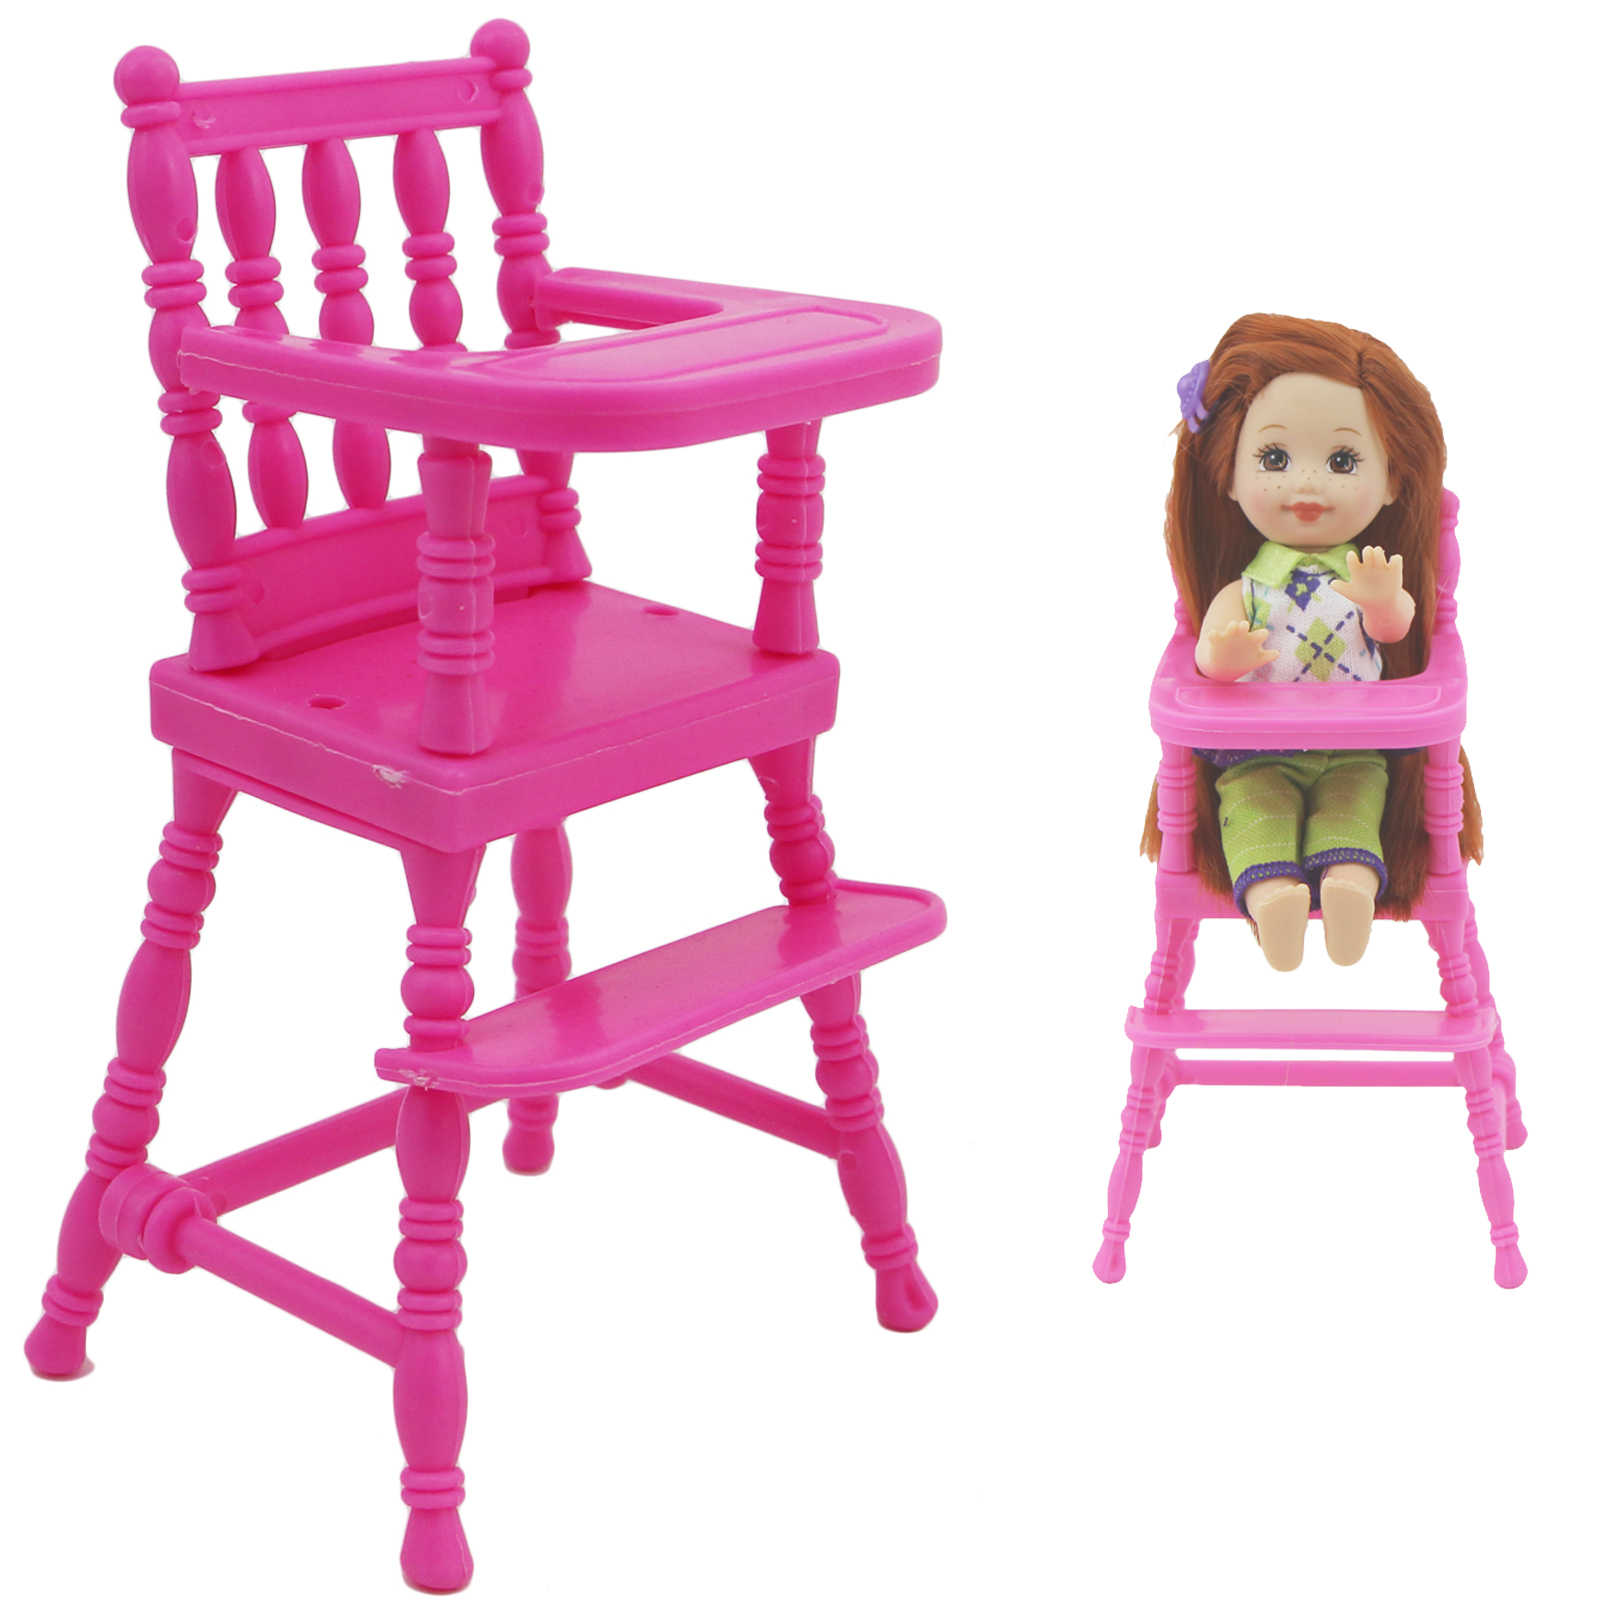 1 Set Pink Assembly Baby High Chair Nursery Furniture Dinner Toys Dollhouse Accessories for Barbie Doll Sister 1:12 Doll Toy